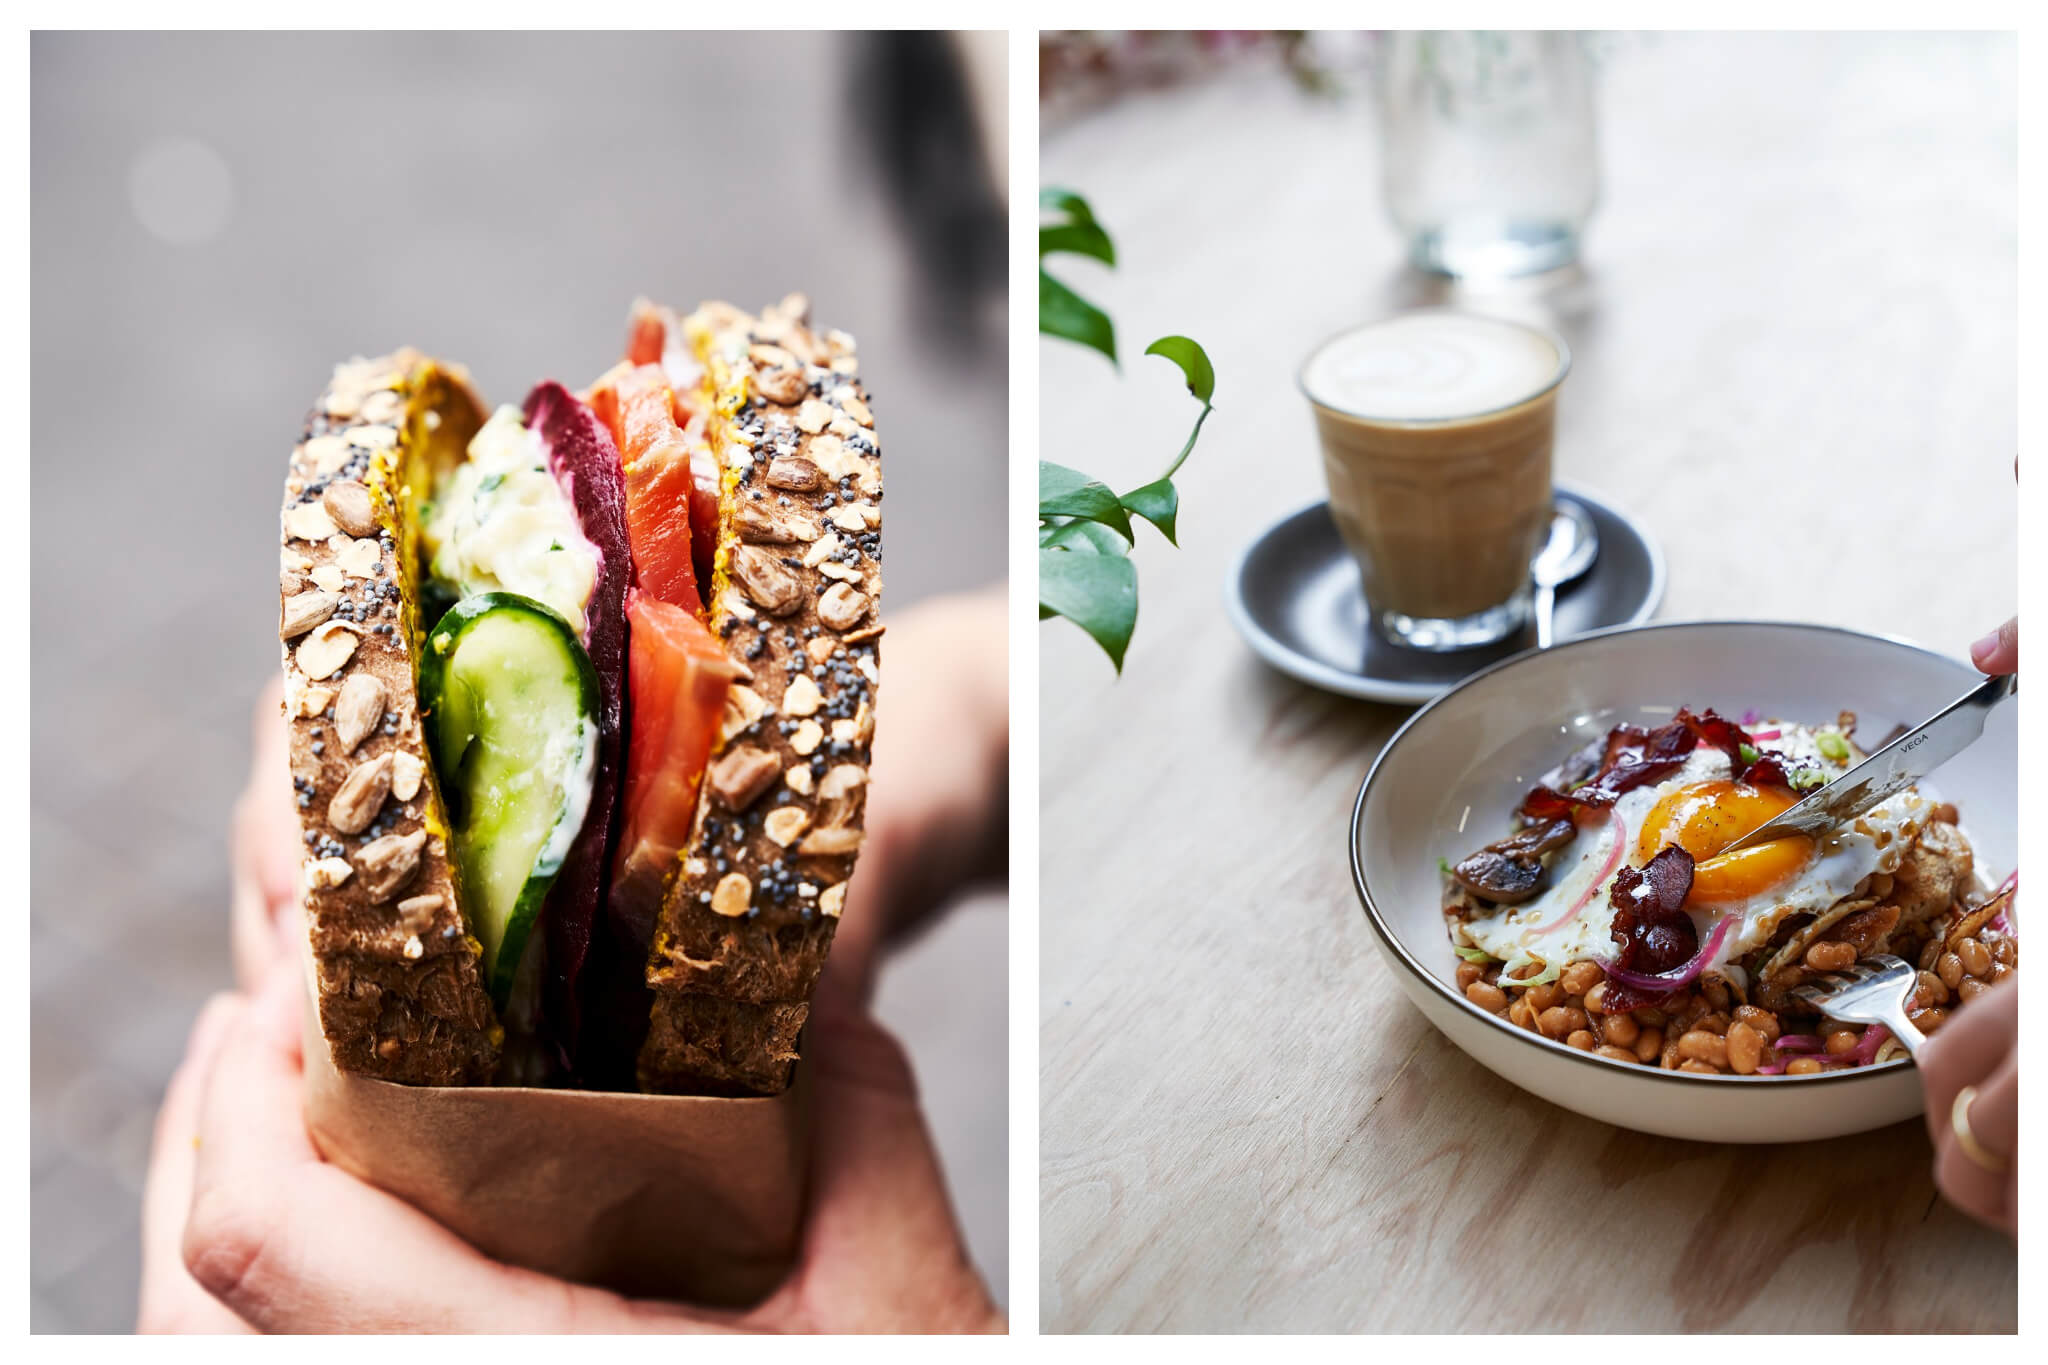 Left: A person holds a sandwich, stuffed with vegetables, from Back in Black, Right: A coffee sits next to a bowl of food, which a person is cutting into, at Back in Black. The bowl contains beans, a fried egg and bacon.